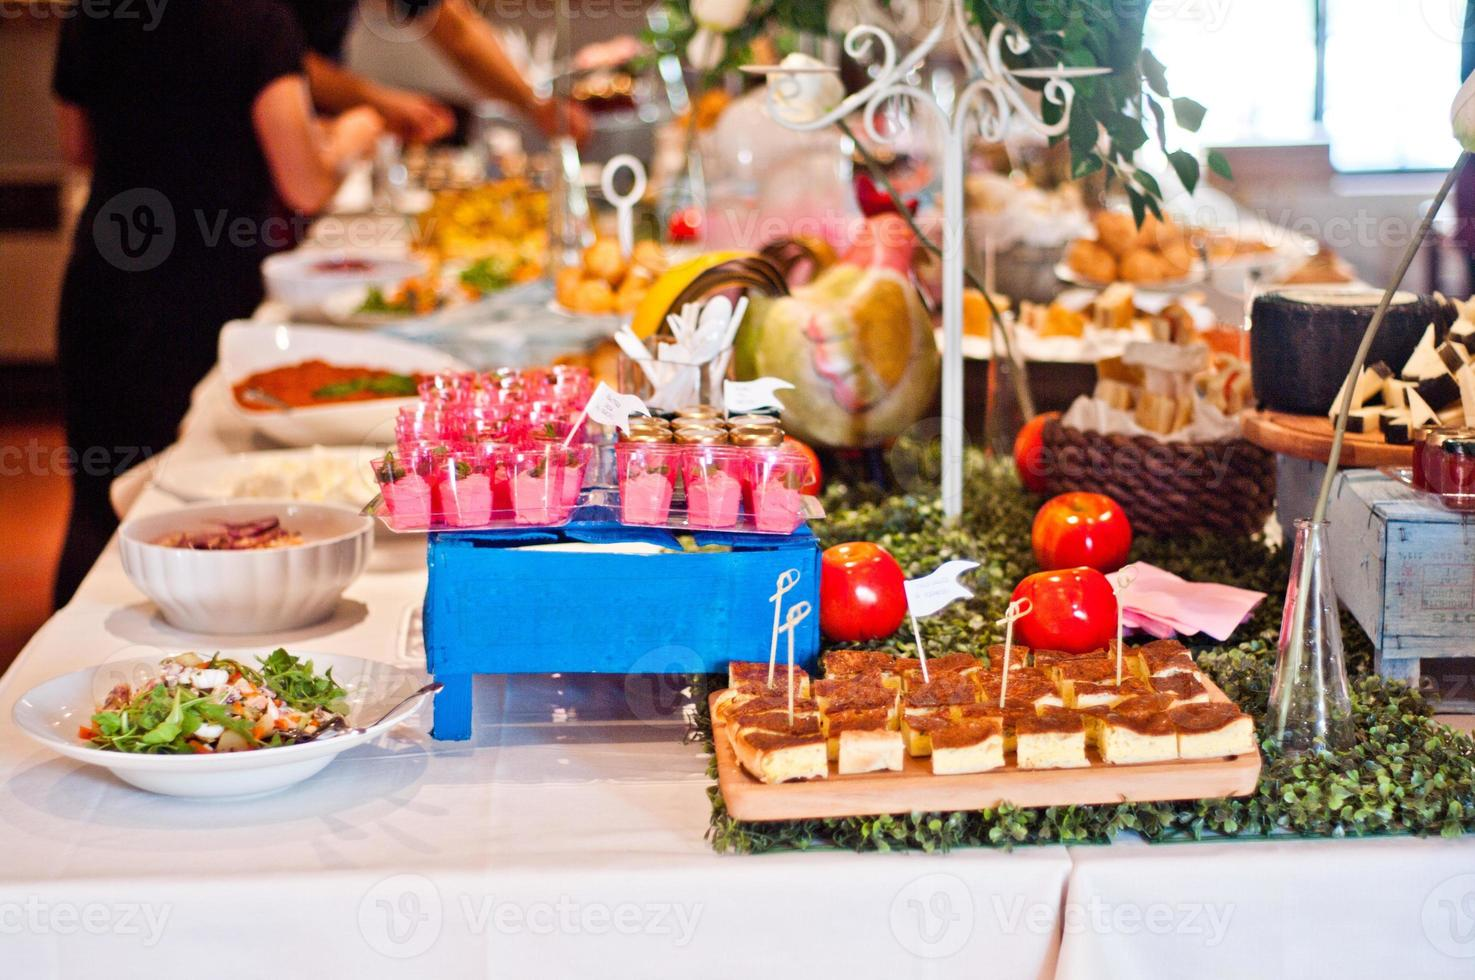 Table set for buffet photo